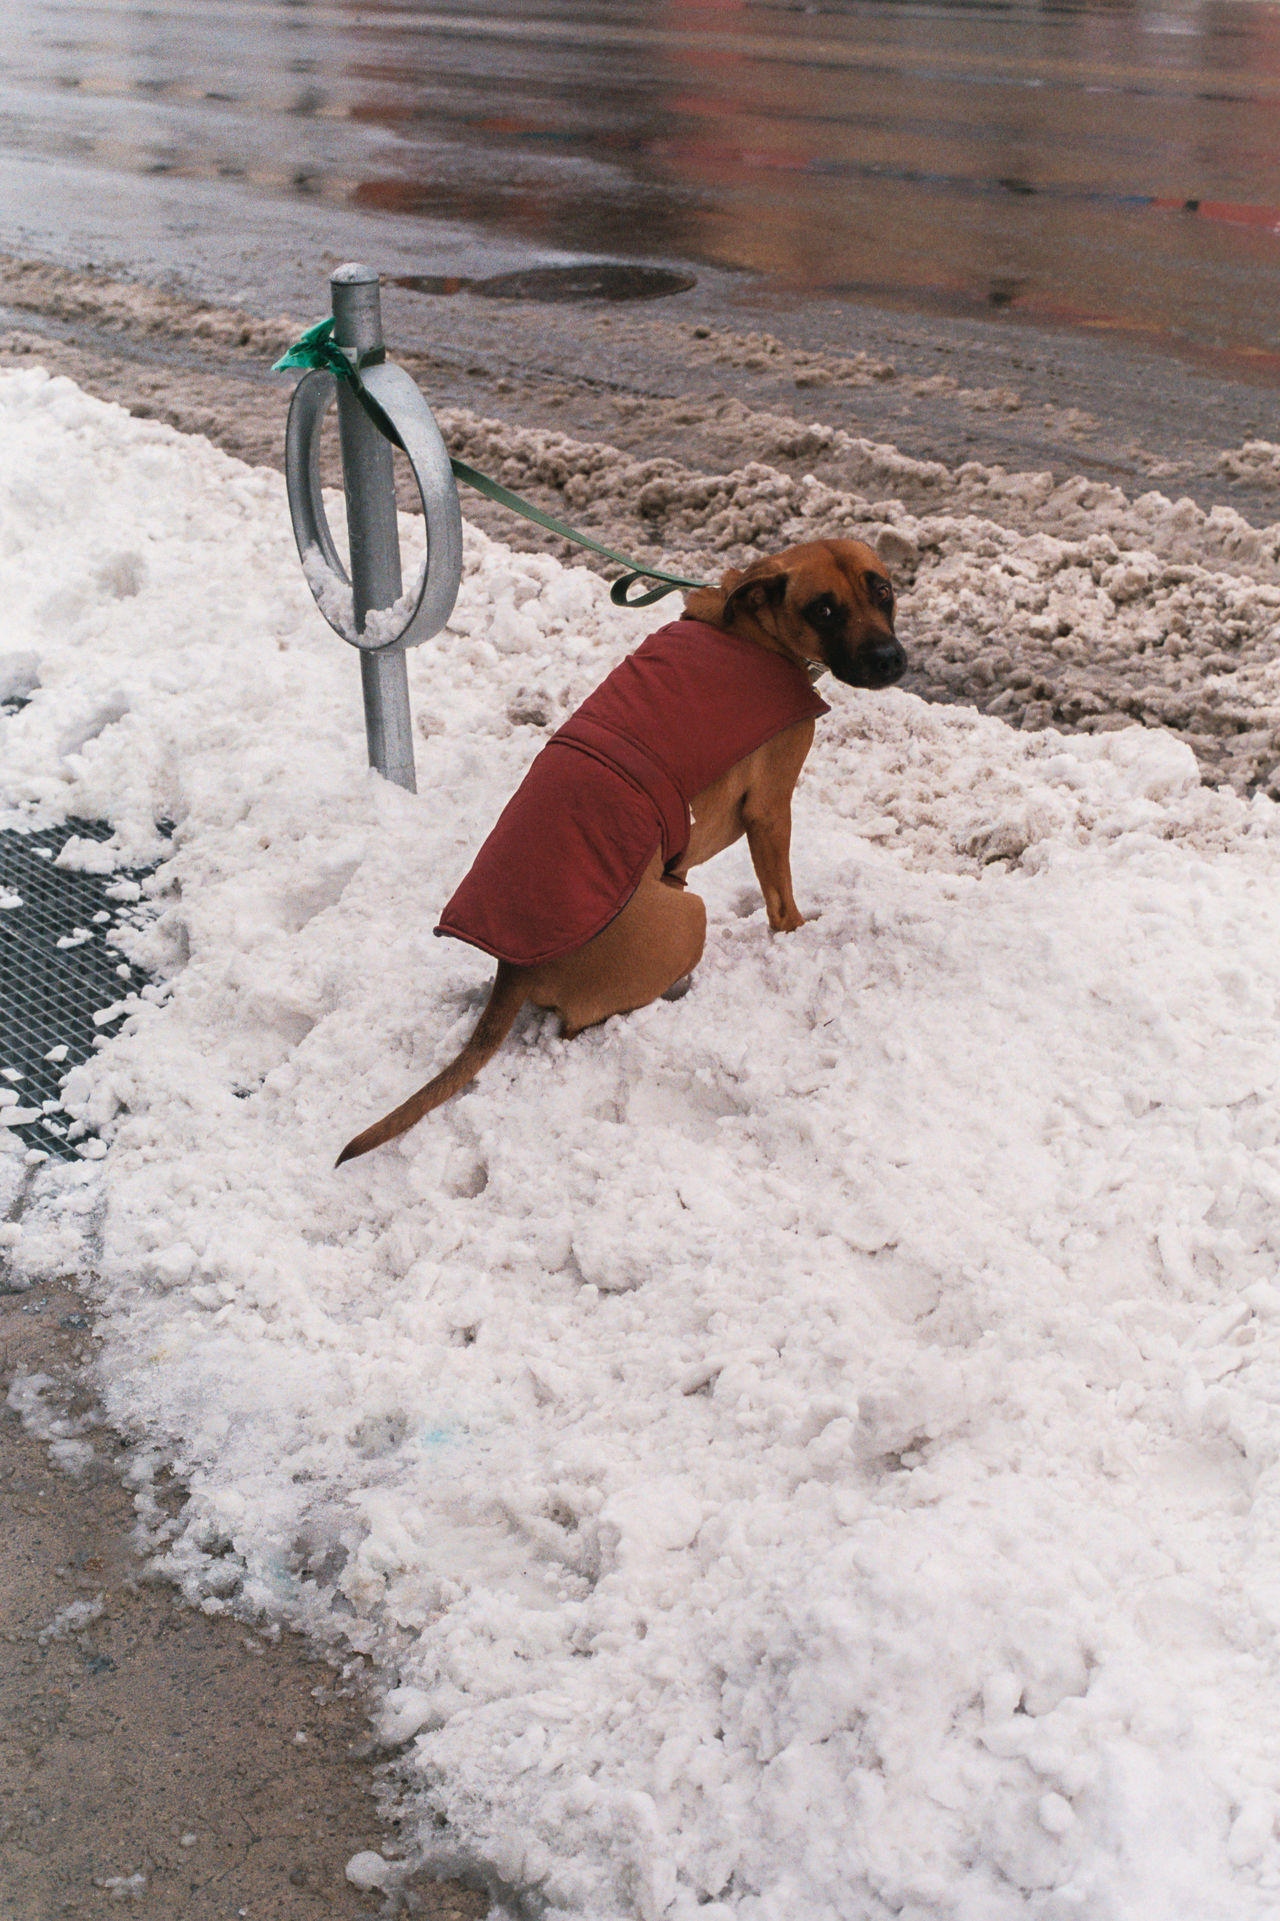 35mm 35mmcolor Cold Day Dog Dog Waiting Domestic Animals No People One Animal Outdoors Pets Snow